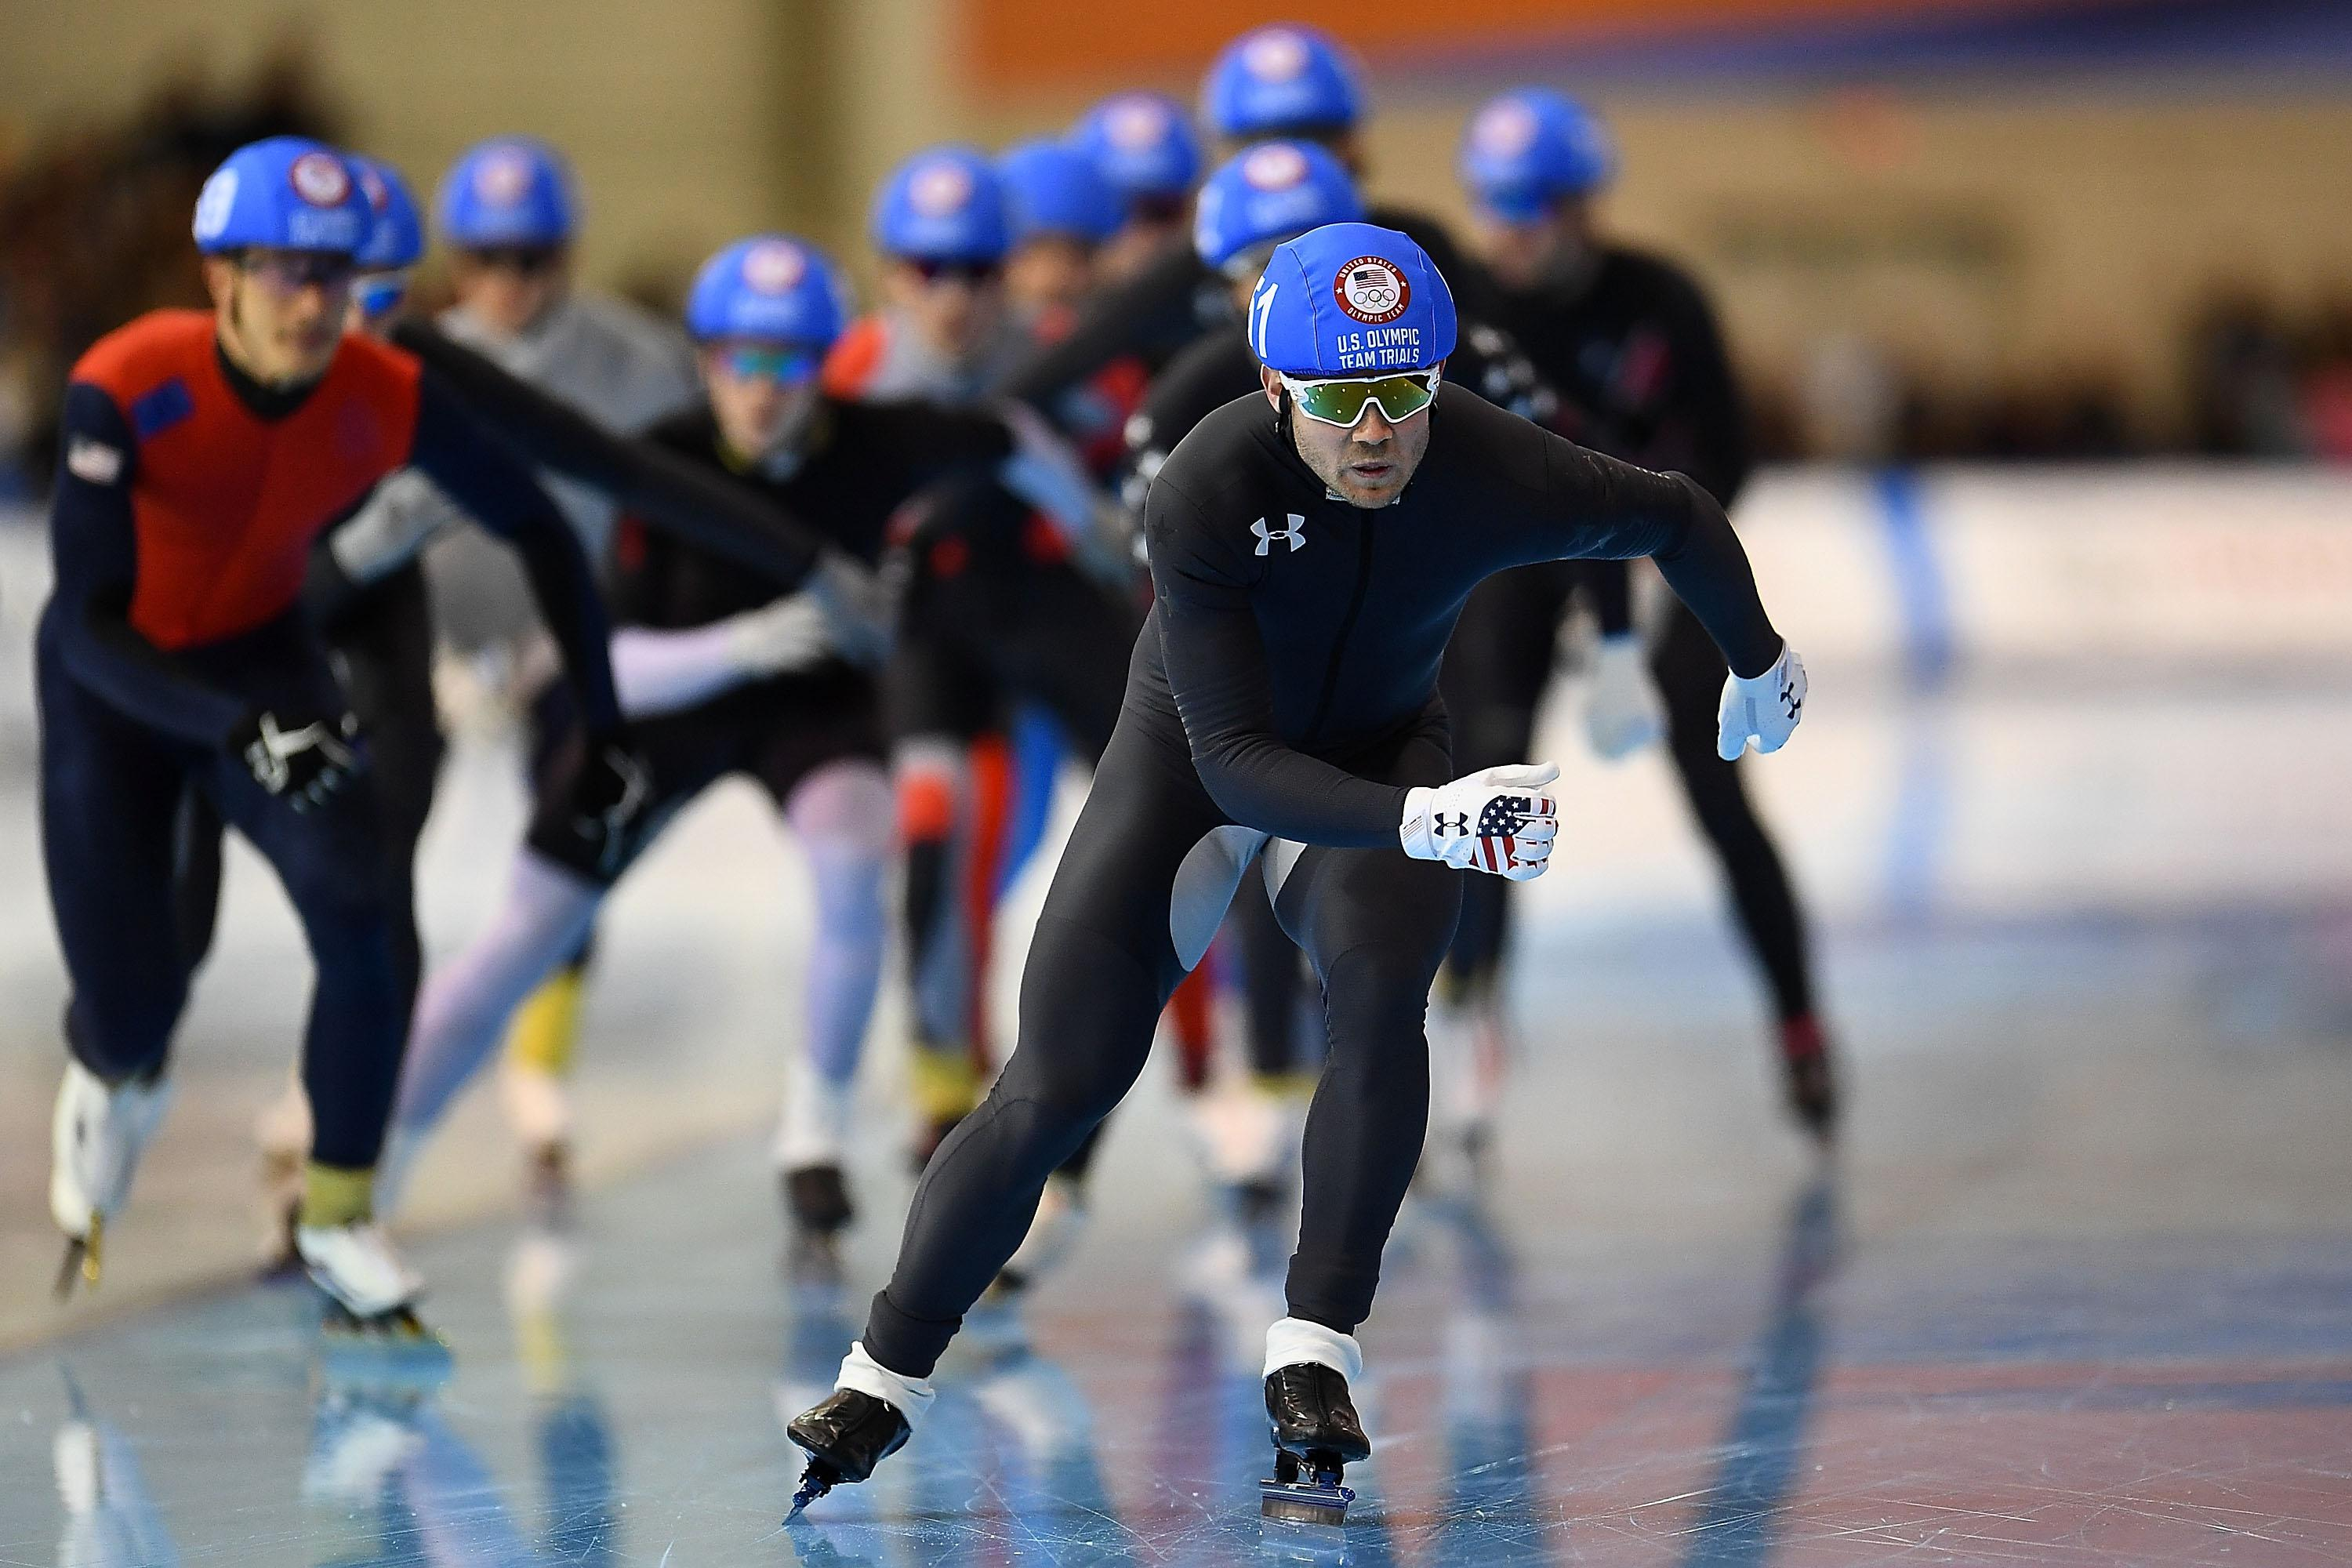 Joey Mantia leads a group of skaters in the men's mass start event during the Long Track Speed Skating Olympic Trials at the Pettit National Ice Center on Jan. 7 in Milwaukee.